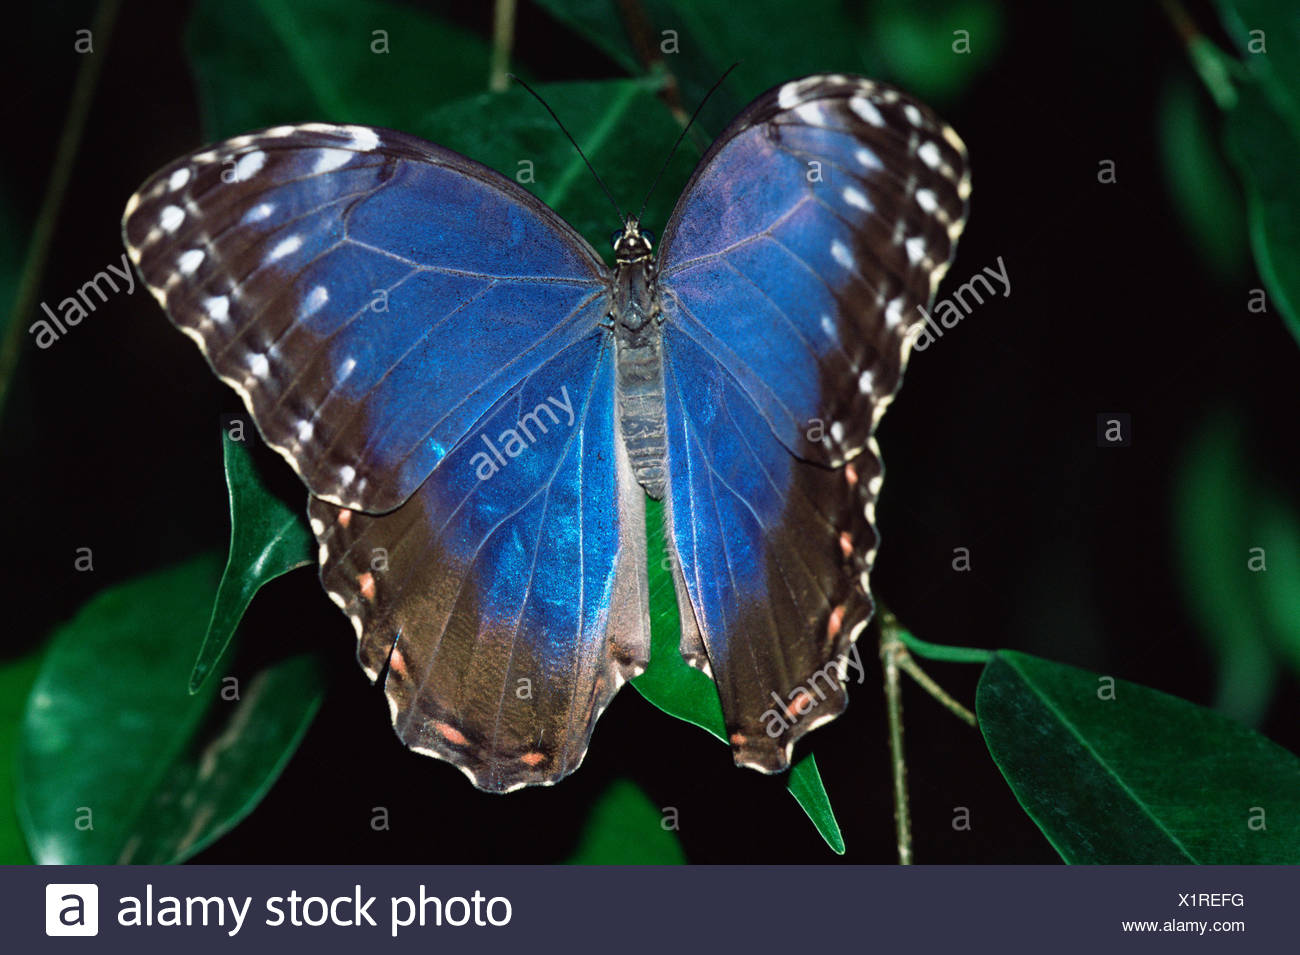 Blue butterfly on a leaf - Stock Image